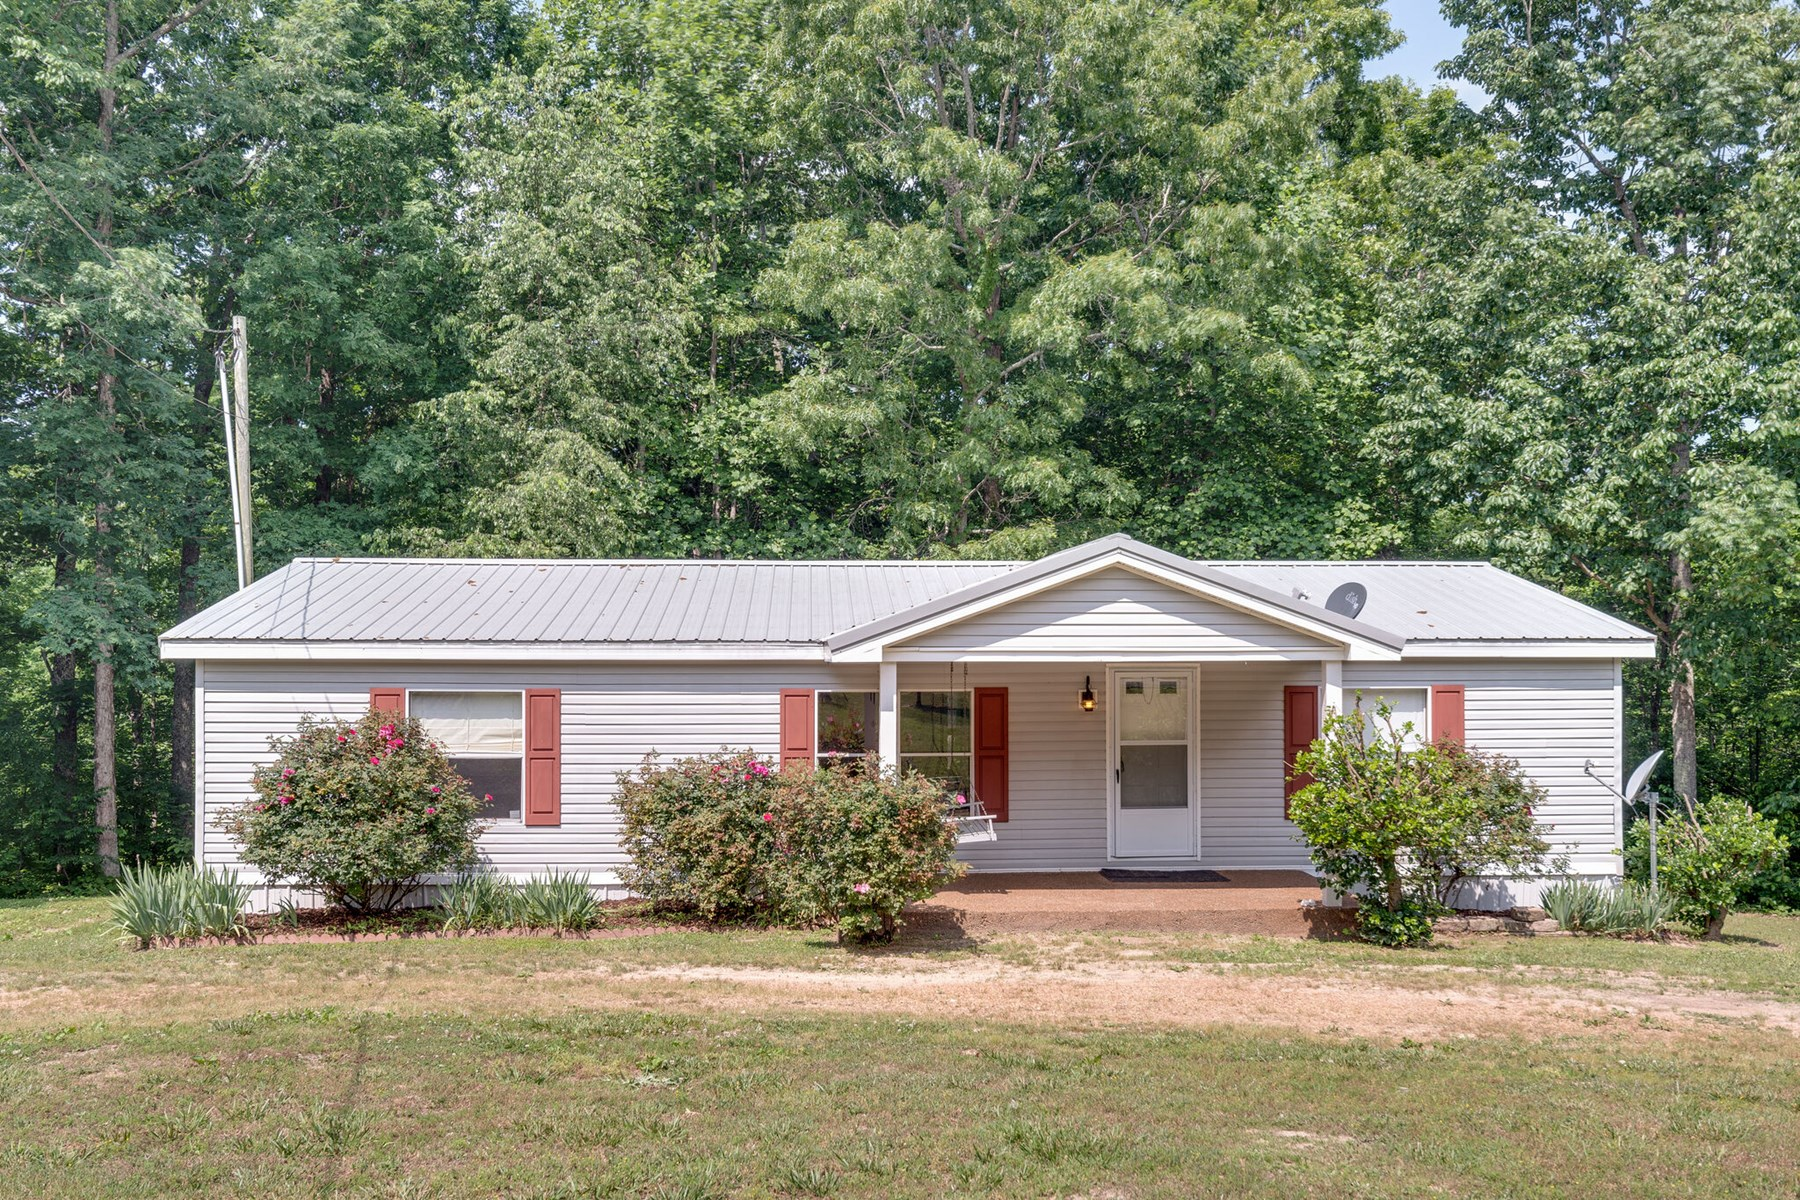 Single Family Home with Acreage for Sale in Hohenwald, Tenn